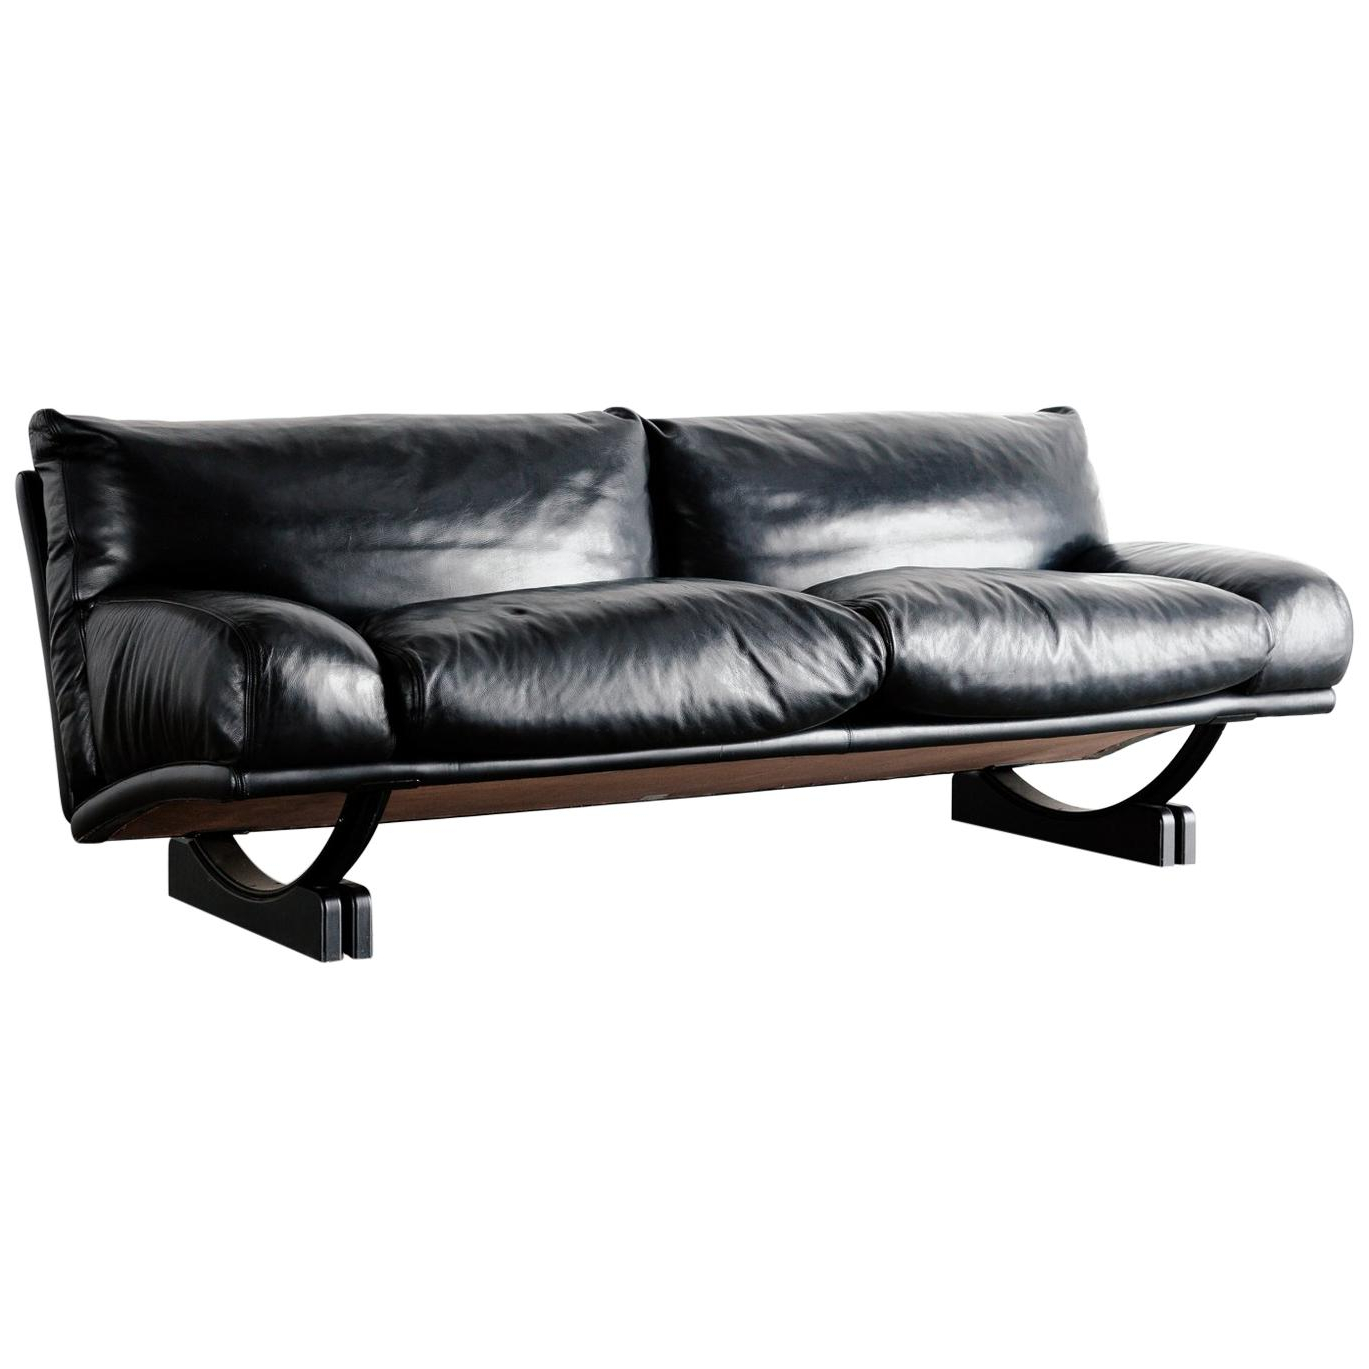 2019 London Optical Sofa Chairs Regarding Antique And Vintage Chairs, Sofas And Seating – 71,671 For Sale At (View 1 of 20)